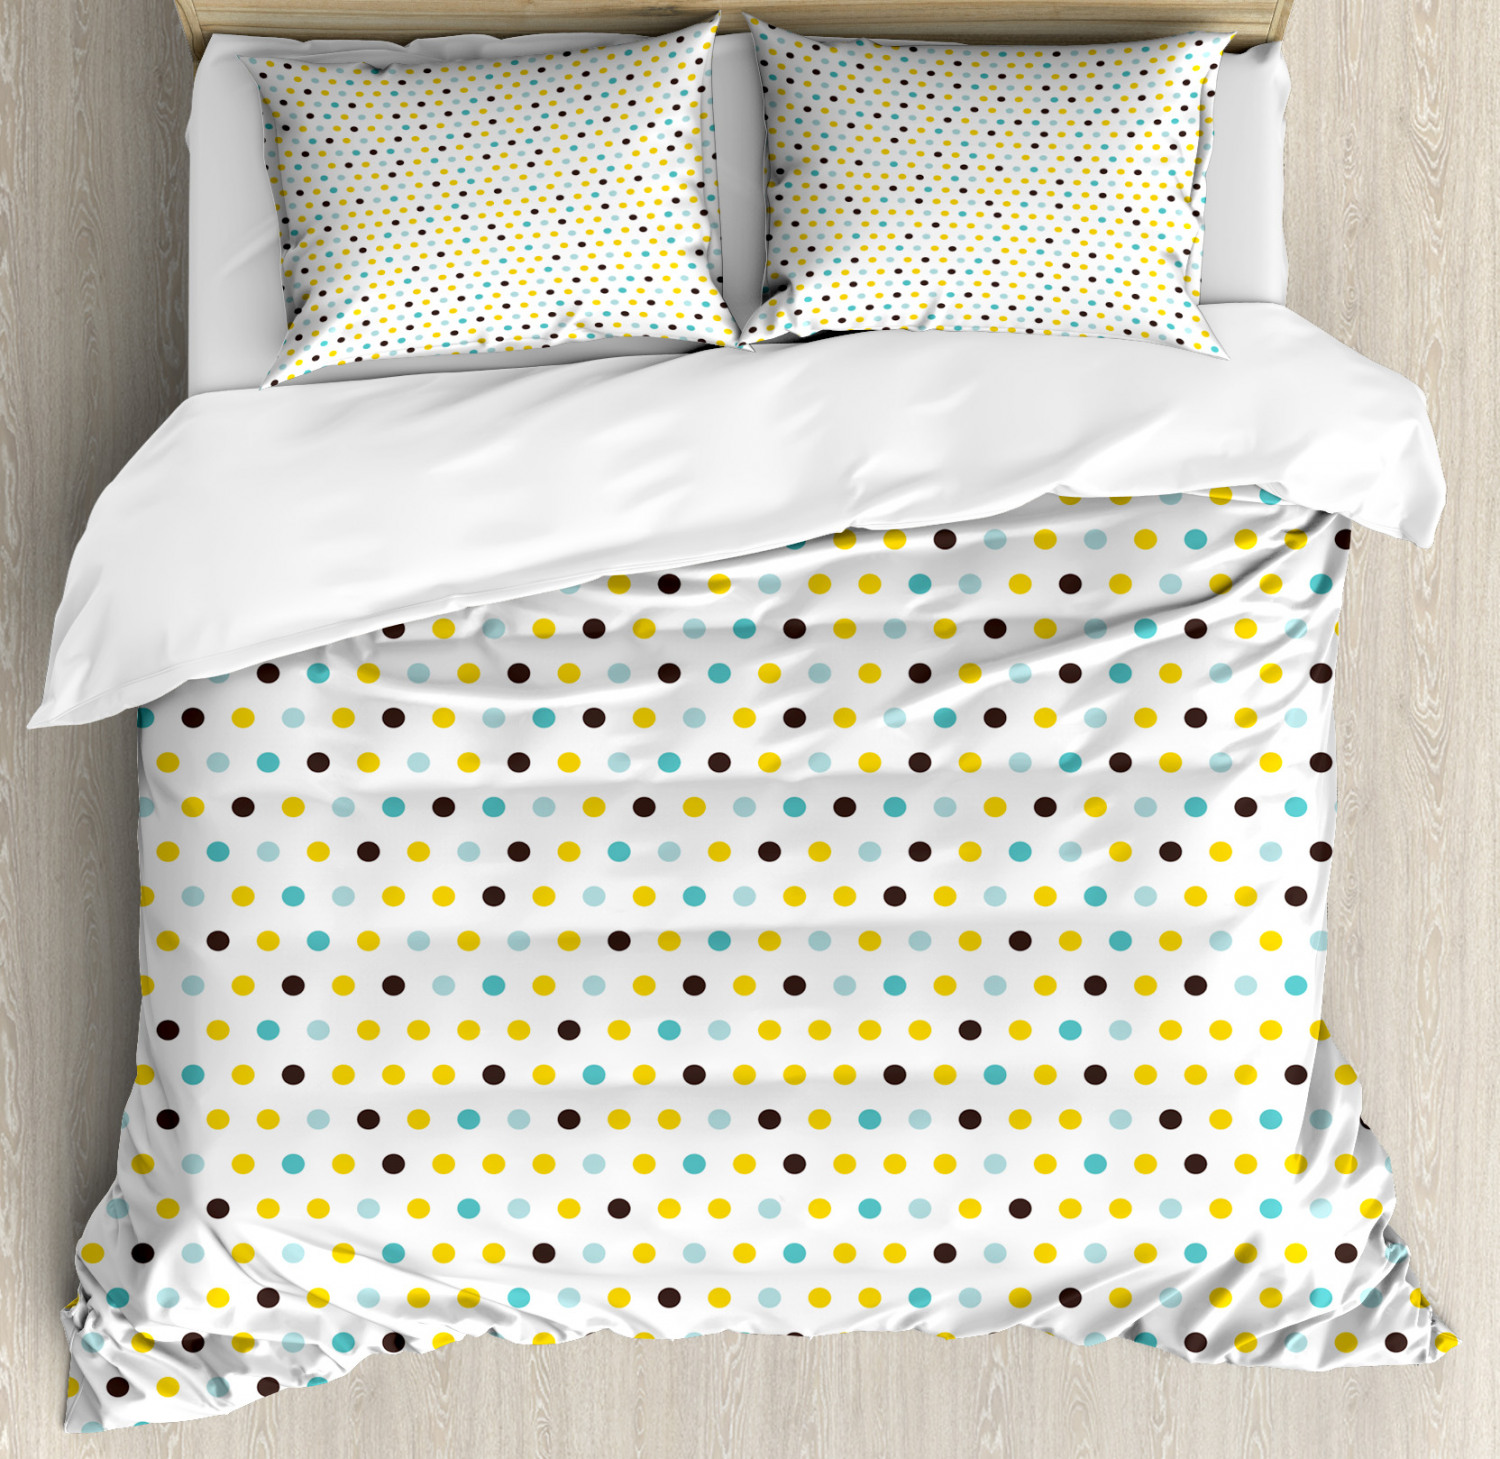 Retro Duvet Cover Set with Pillow Shams Polka Dots Rounds Retro Print